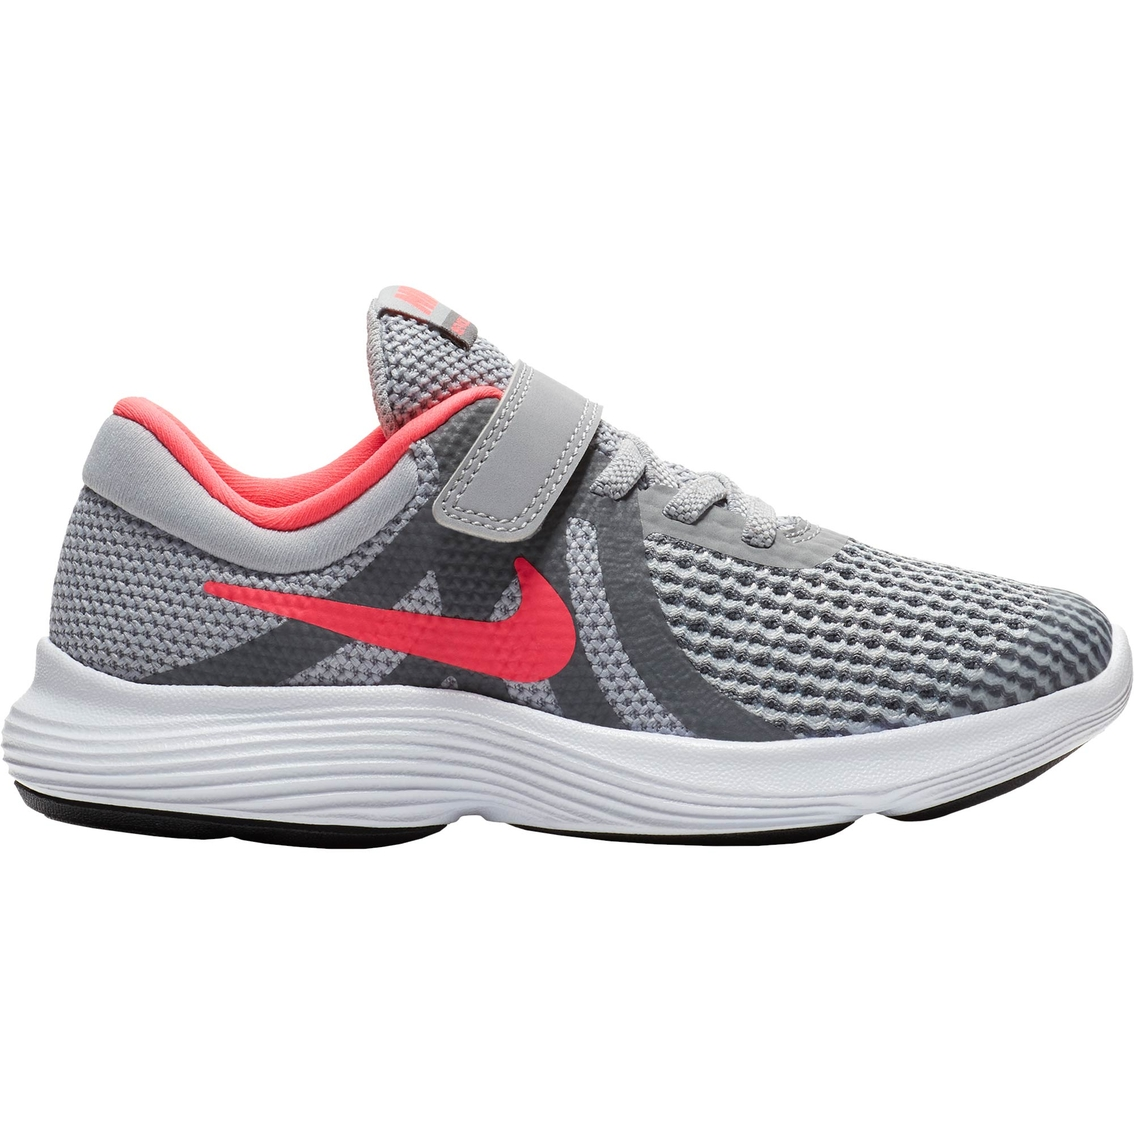 8c85c0ba Nike Girls Revolutions 4 Pre School Running Shoes | Children's ...